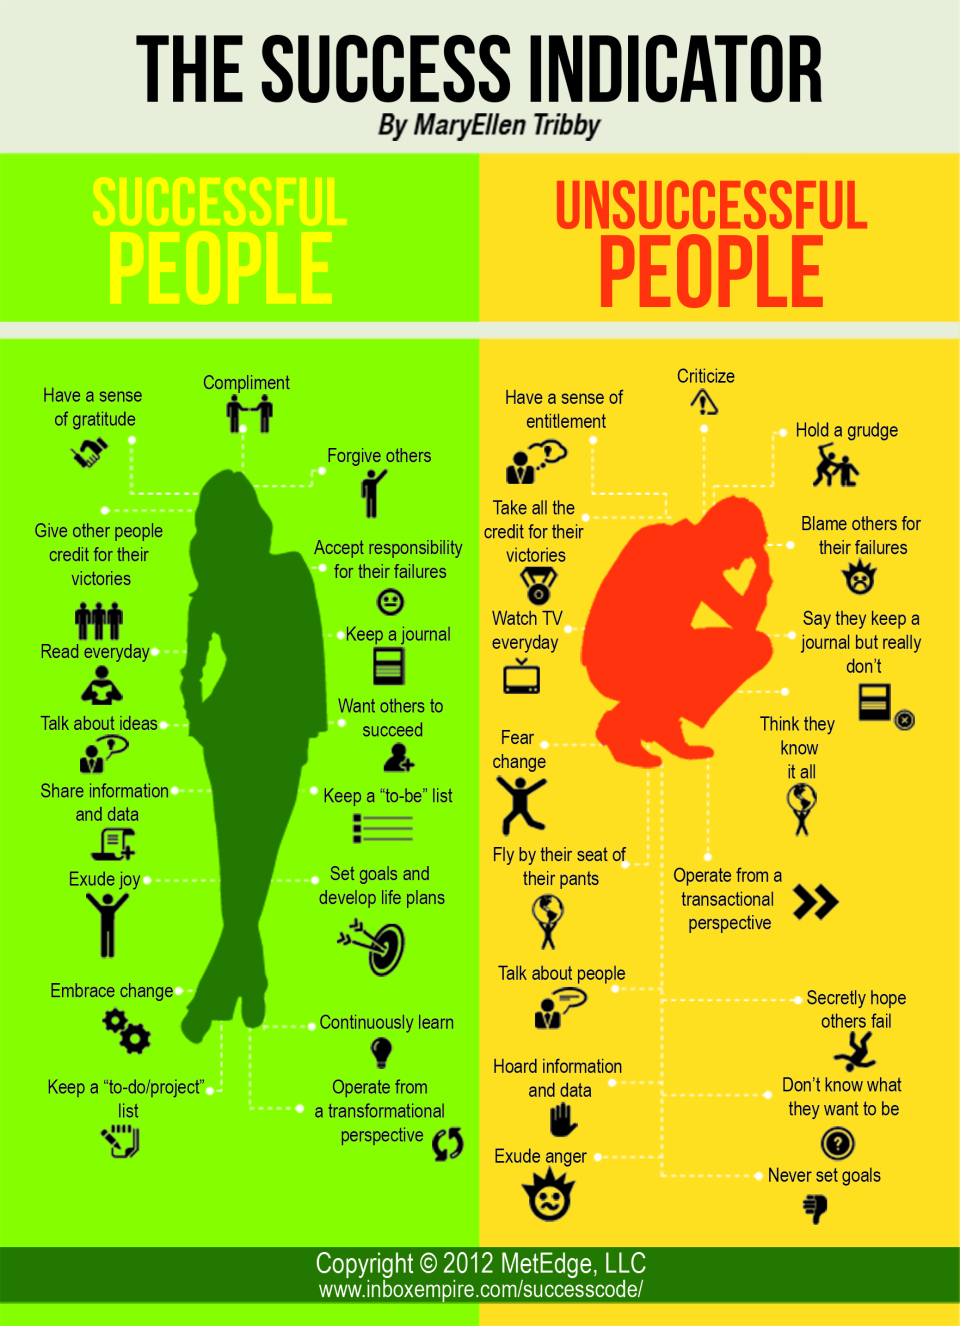 thesuccessindicator-infographic-poster.jpg